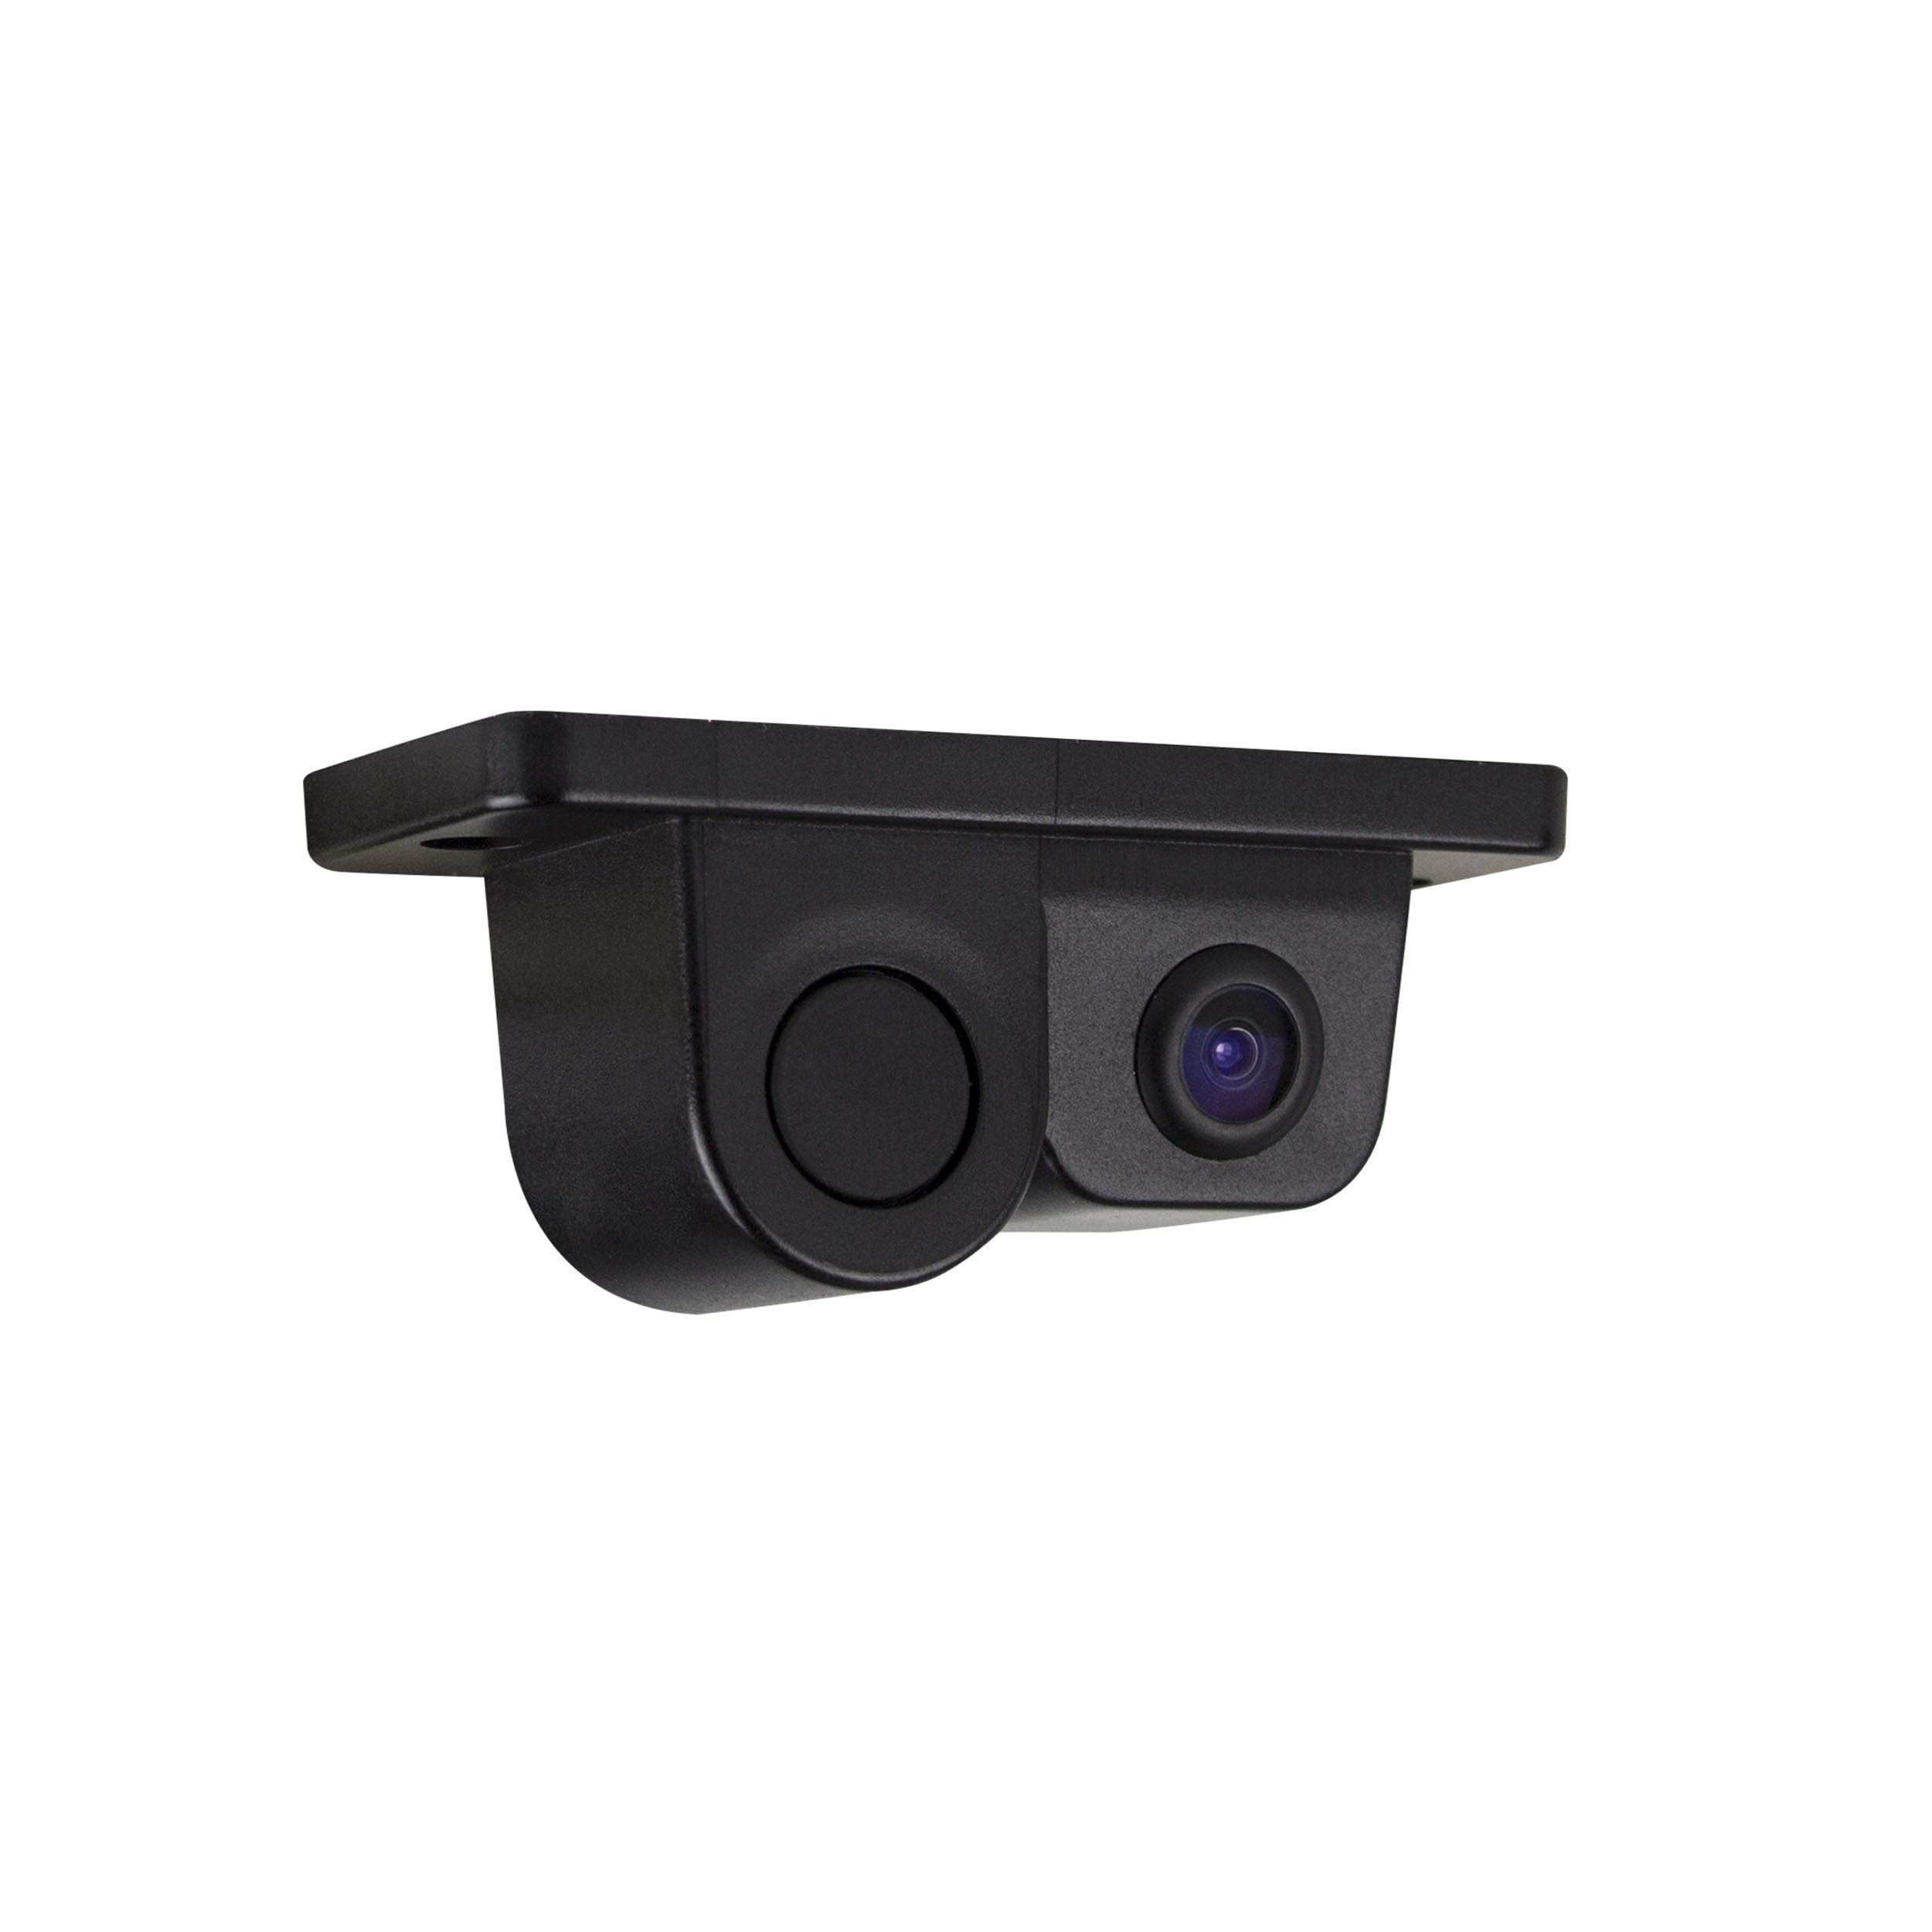 All-in-One Back-up Camera and Parking Sensor